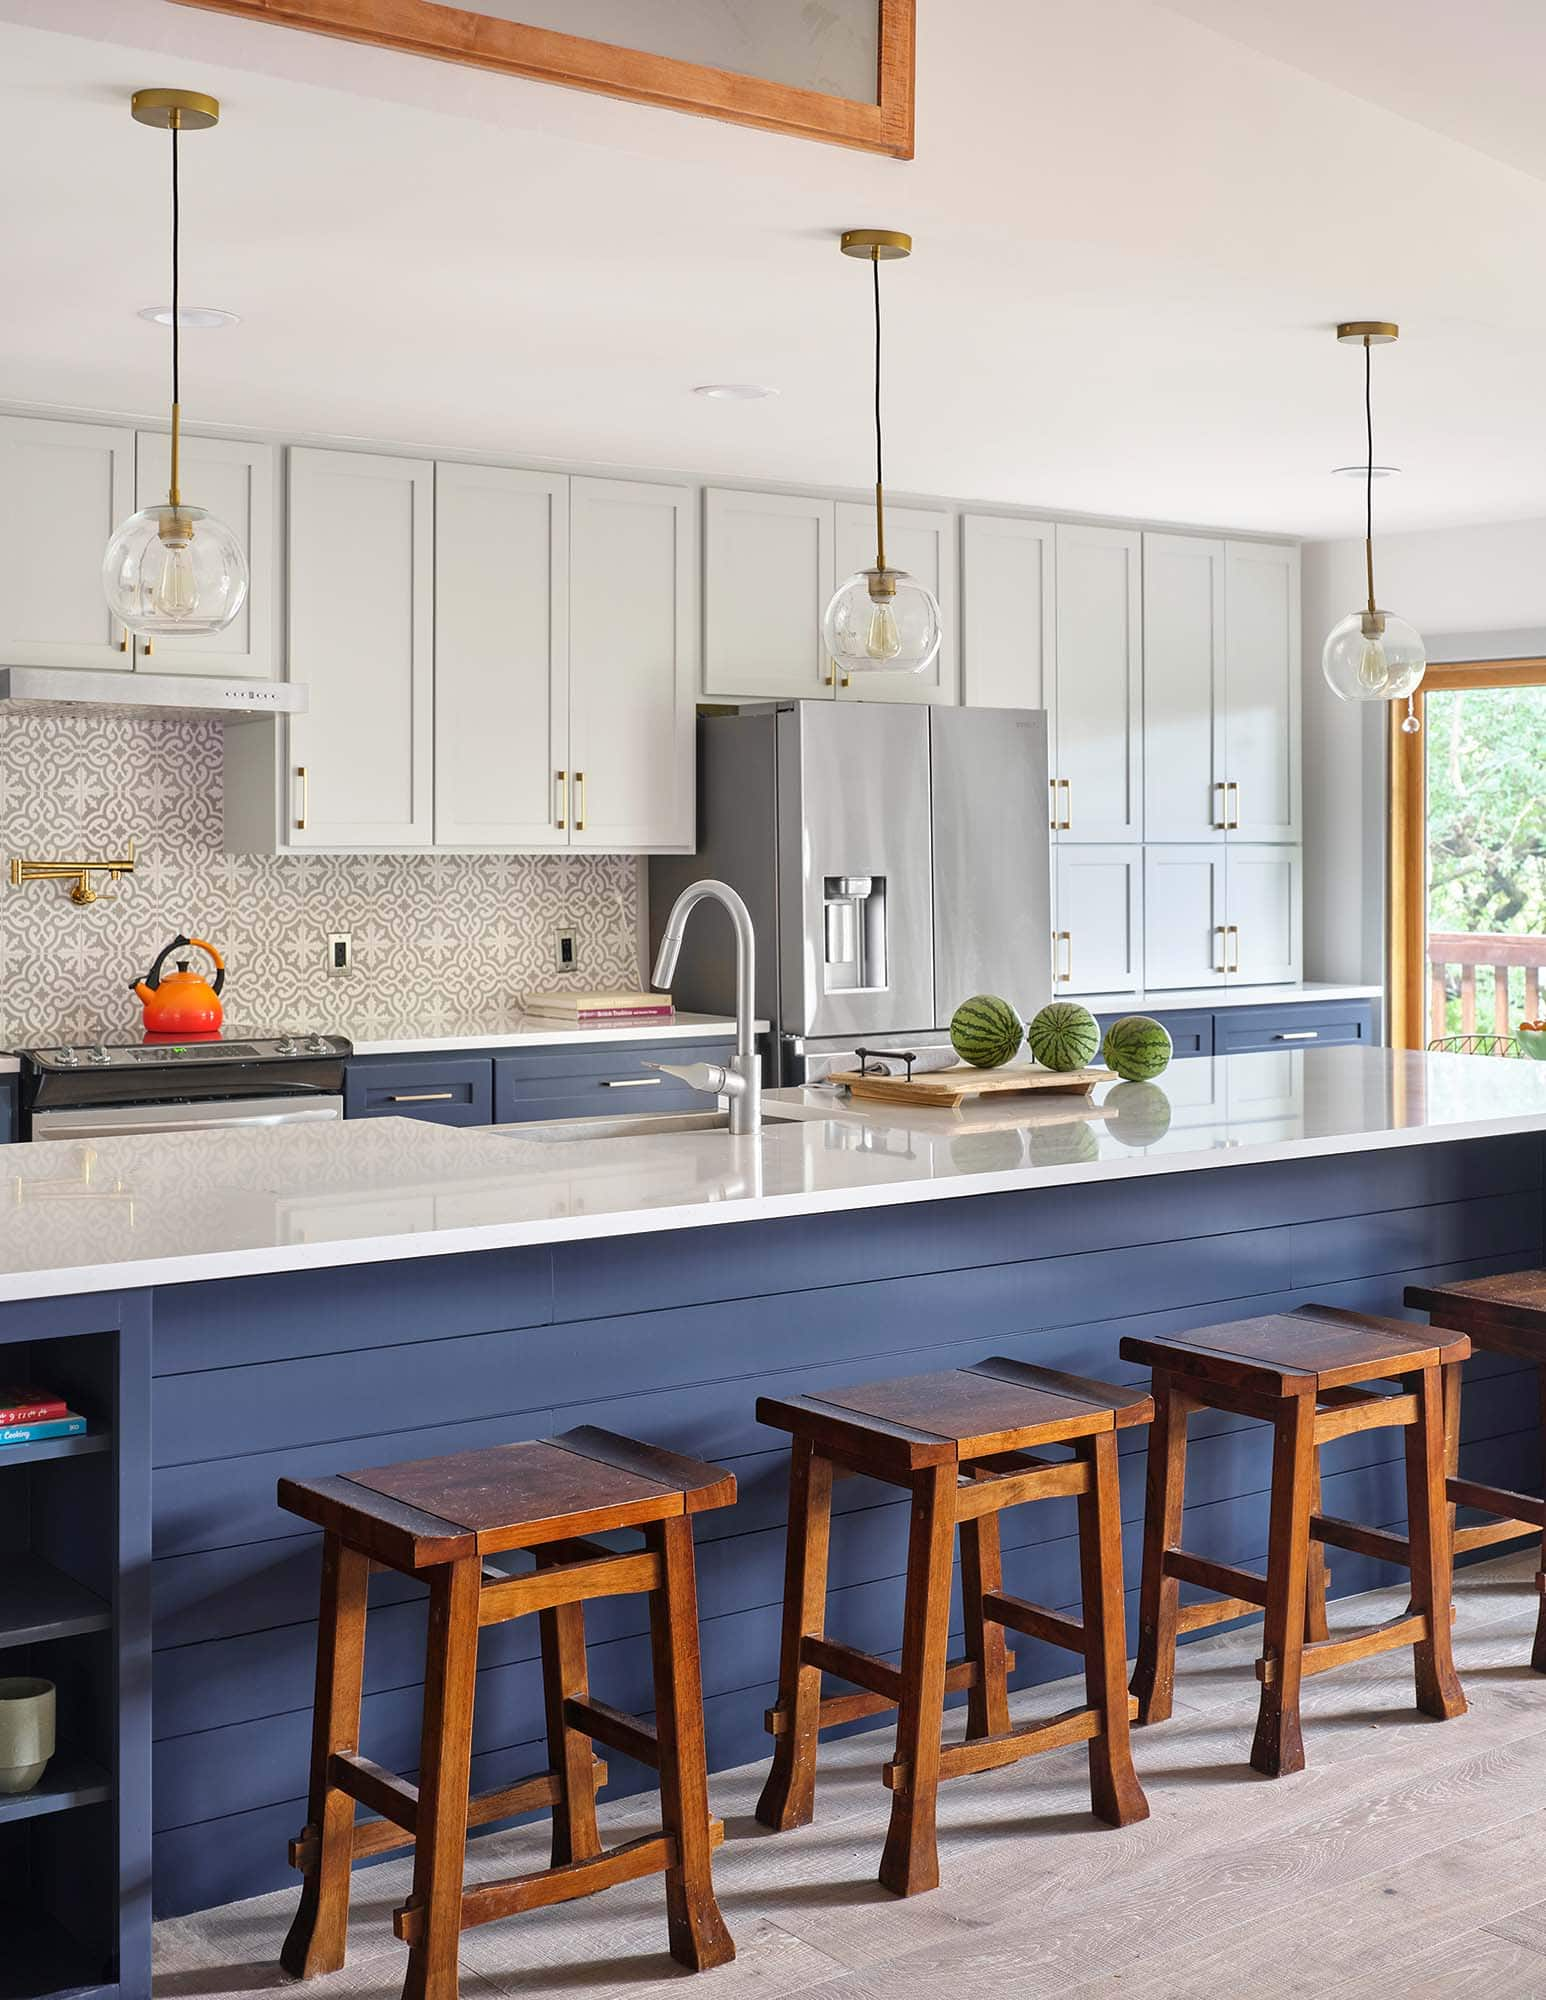 Rollingwood kitchen cabinets painted in Benjamin Moore HC170 Stonington Gray, HC154 Hale Navy, Paper Moon Painting